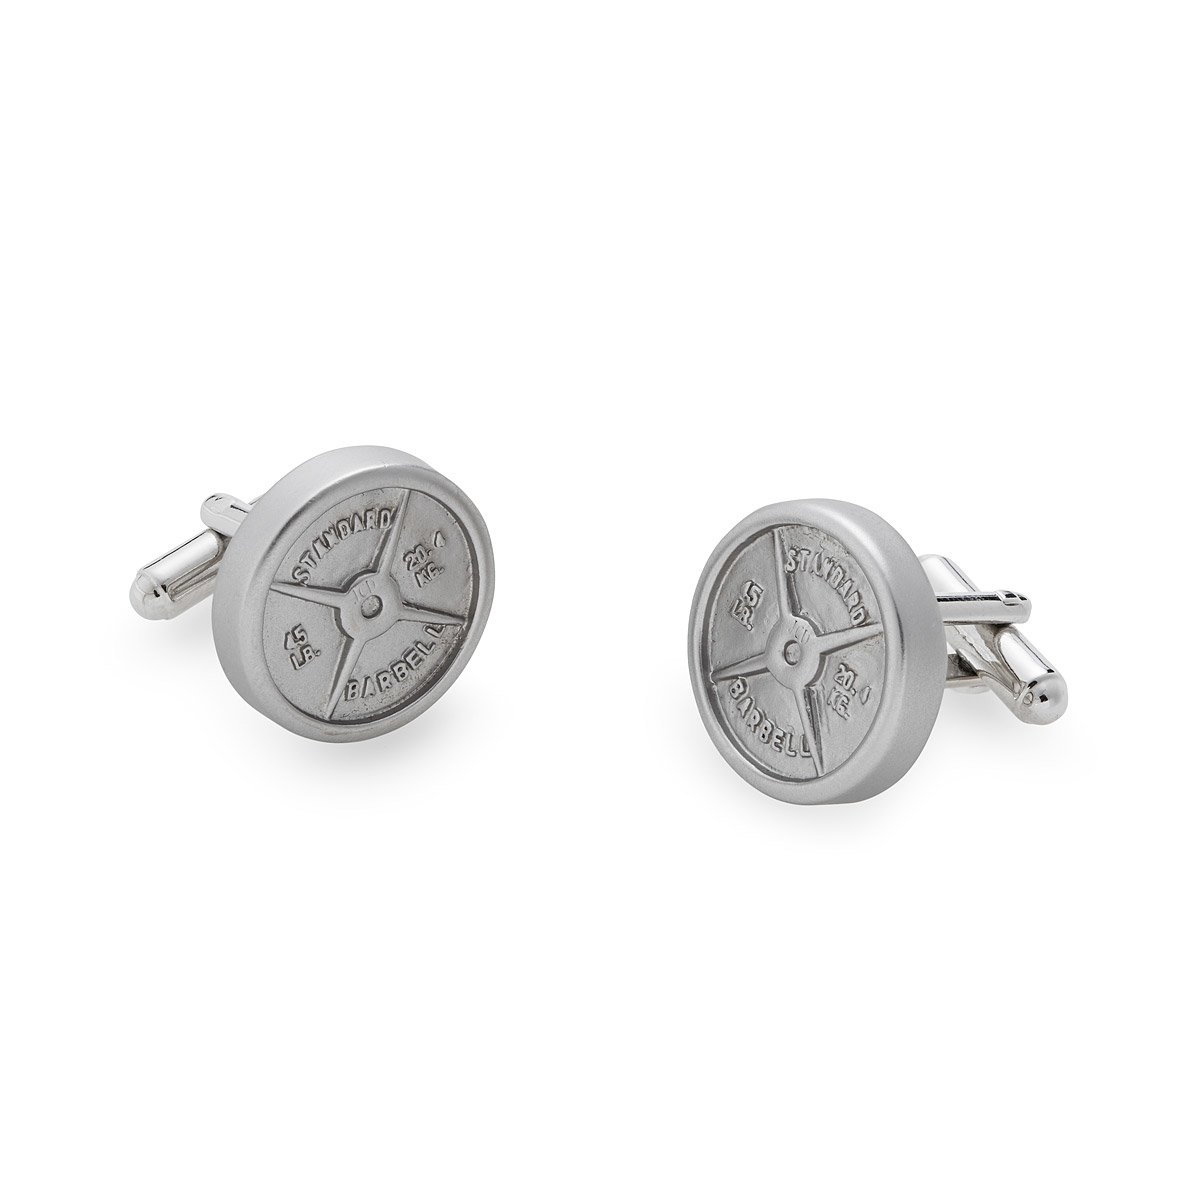 Barbell Cufflinks Mens Fitness Accessories Uncommongoods Circuit Board